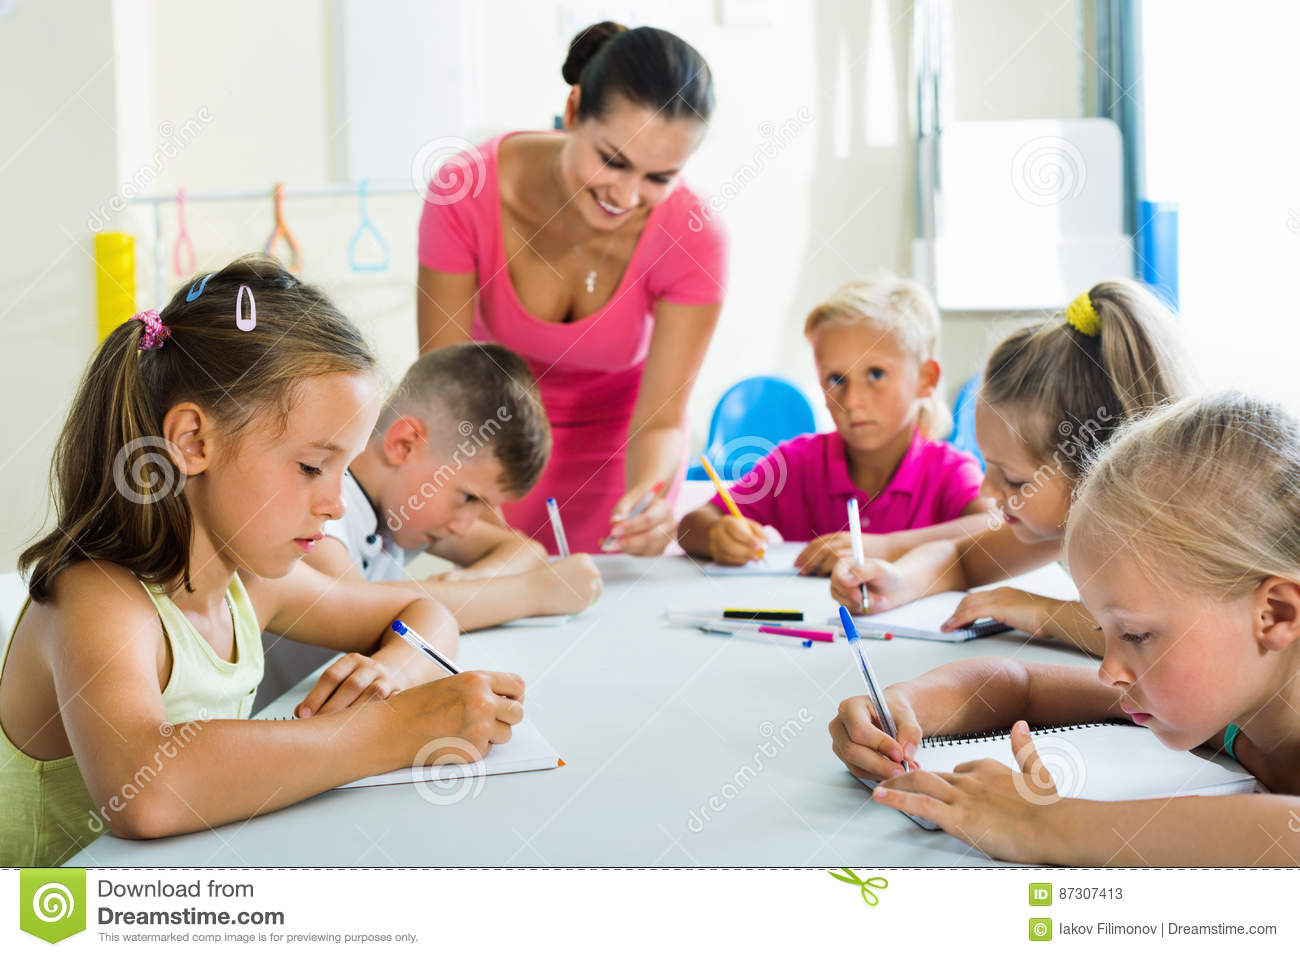 kids writing together with tutor at school class stock image - image